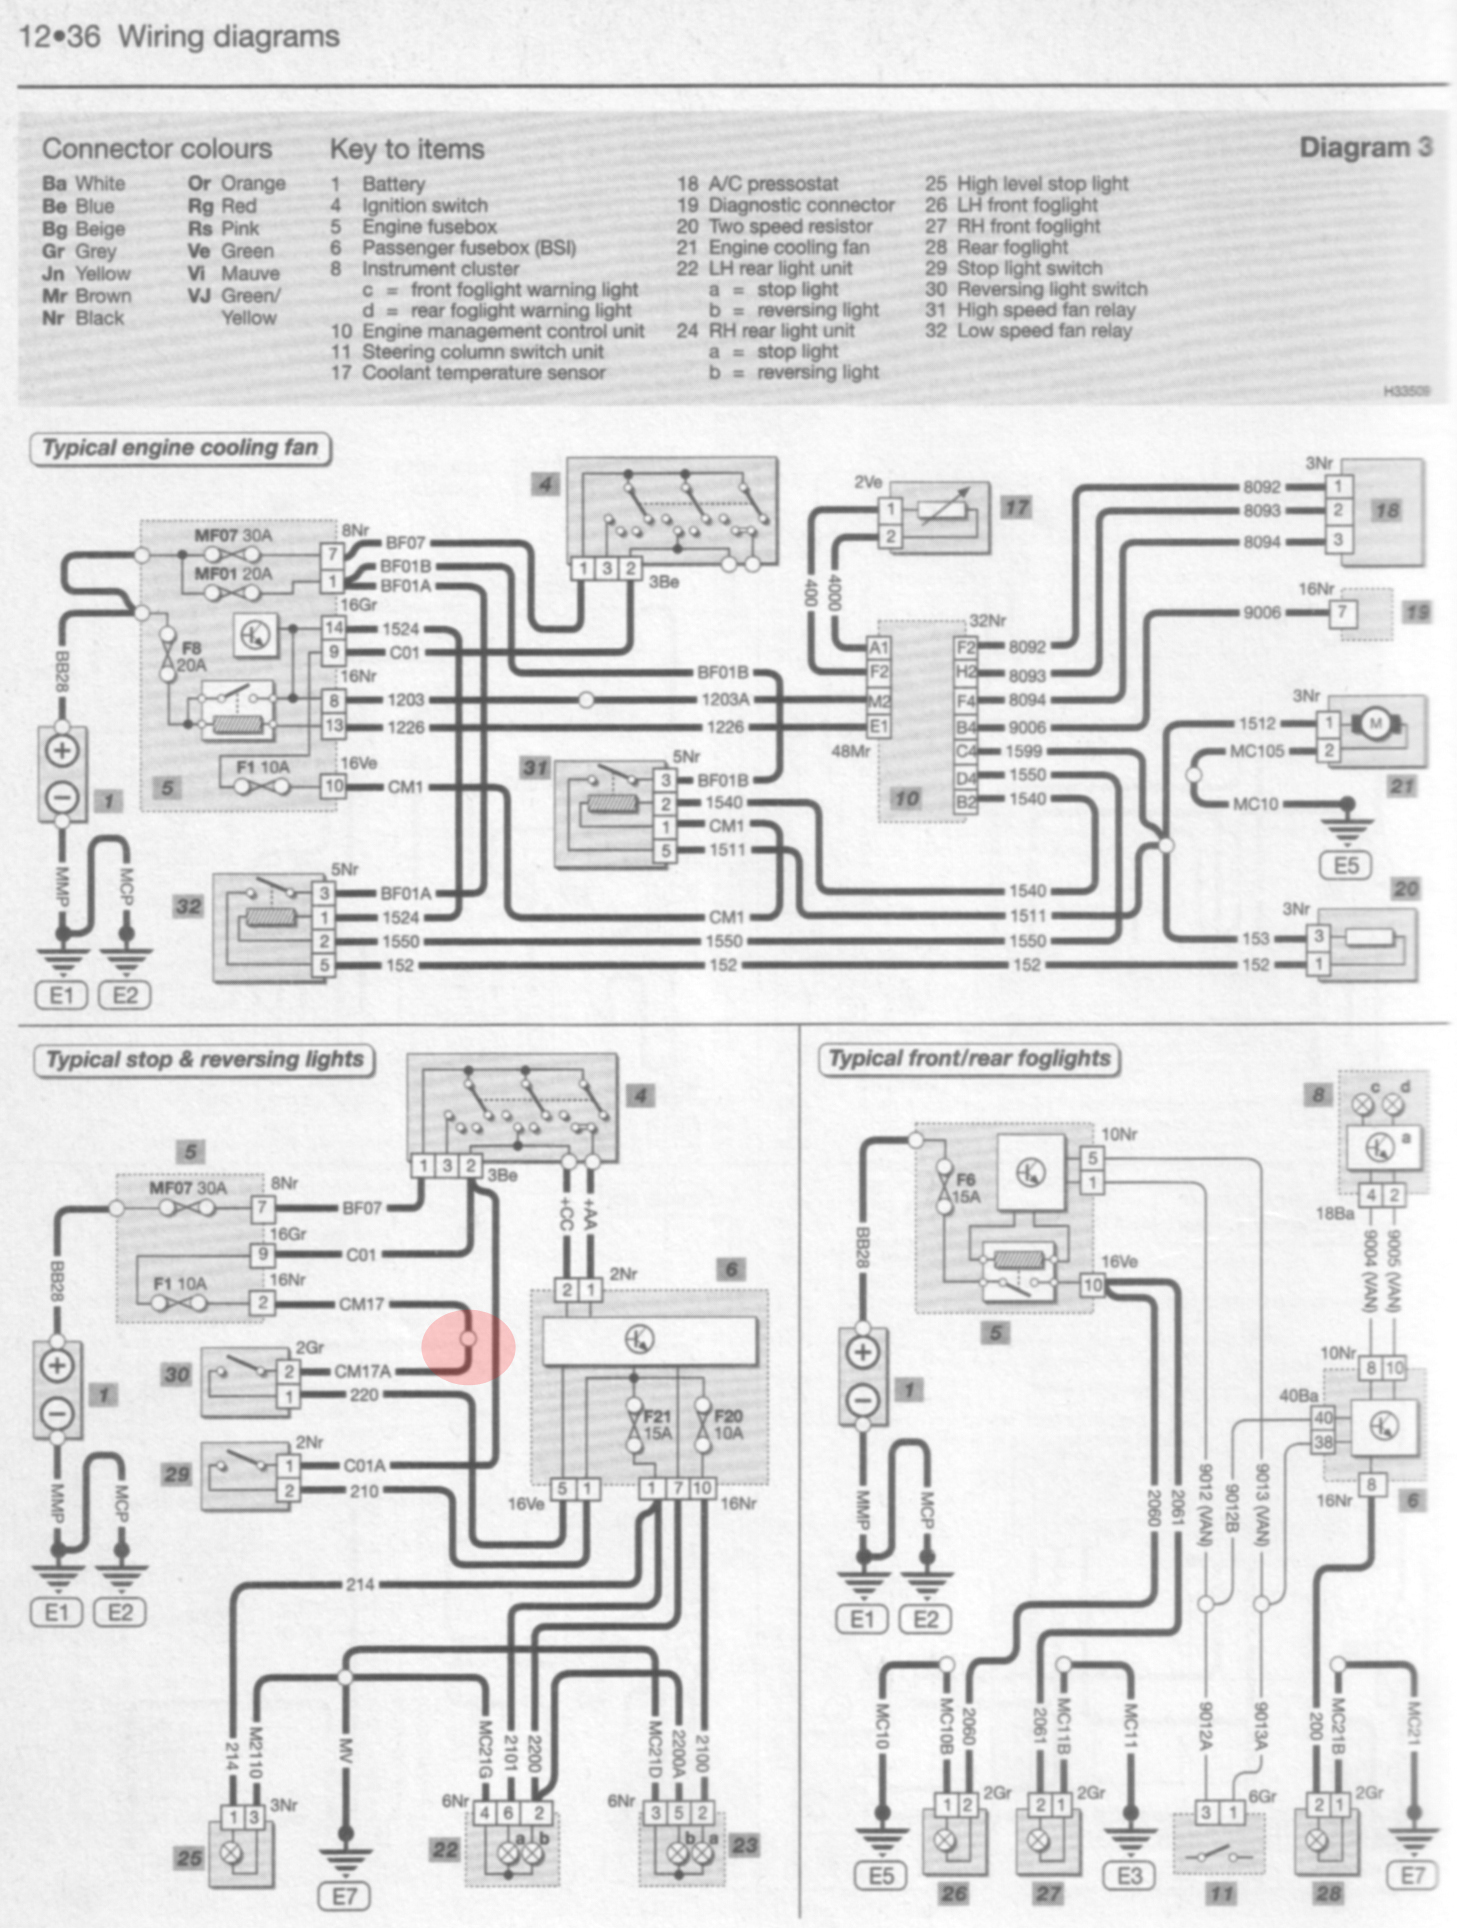 peugeot lights wiring diagram - wiring diagram data today hyundai fog lights wiring diagram #9